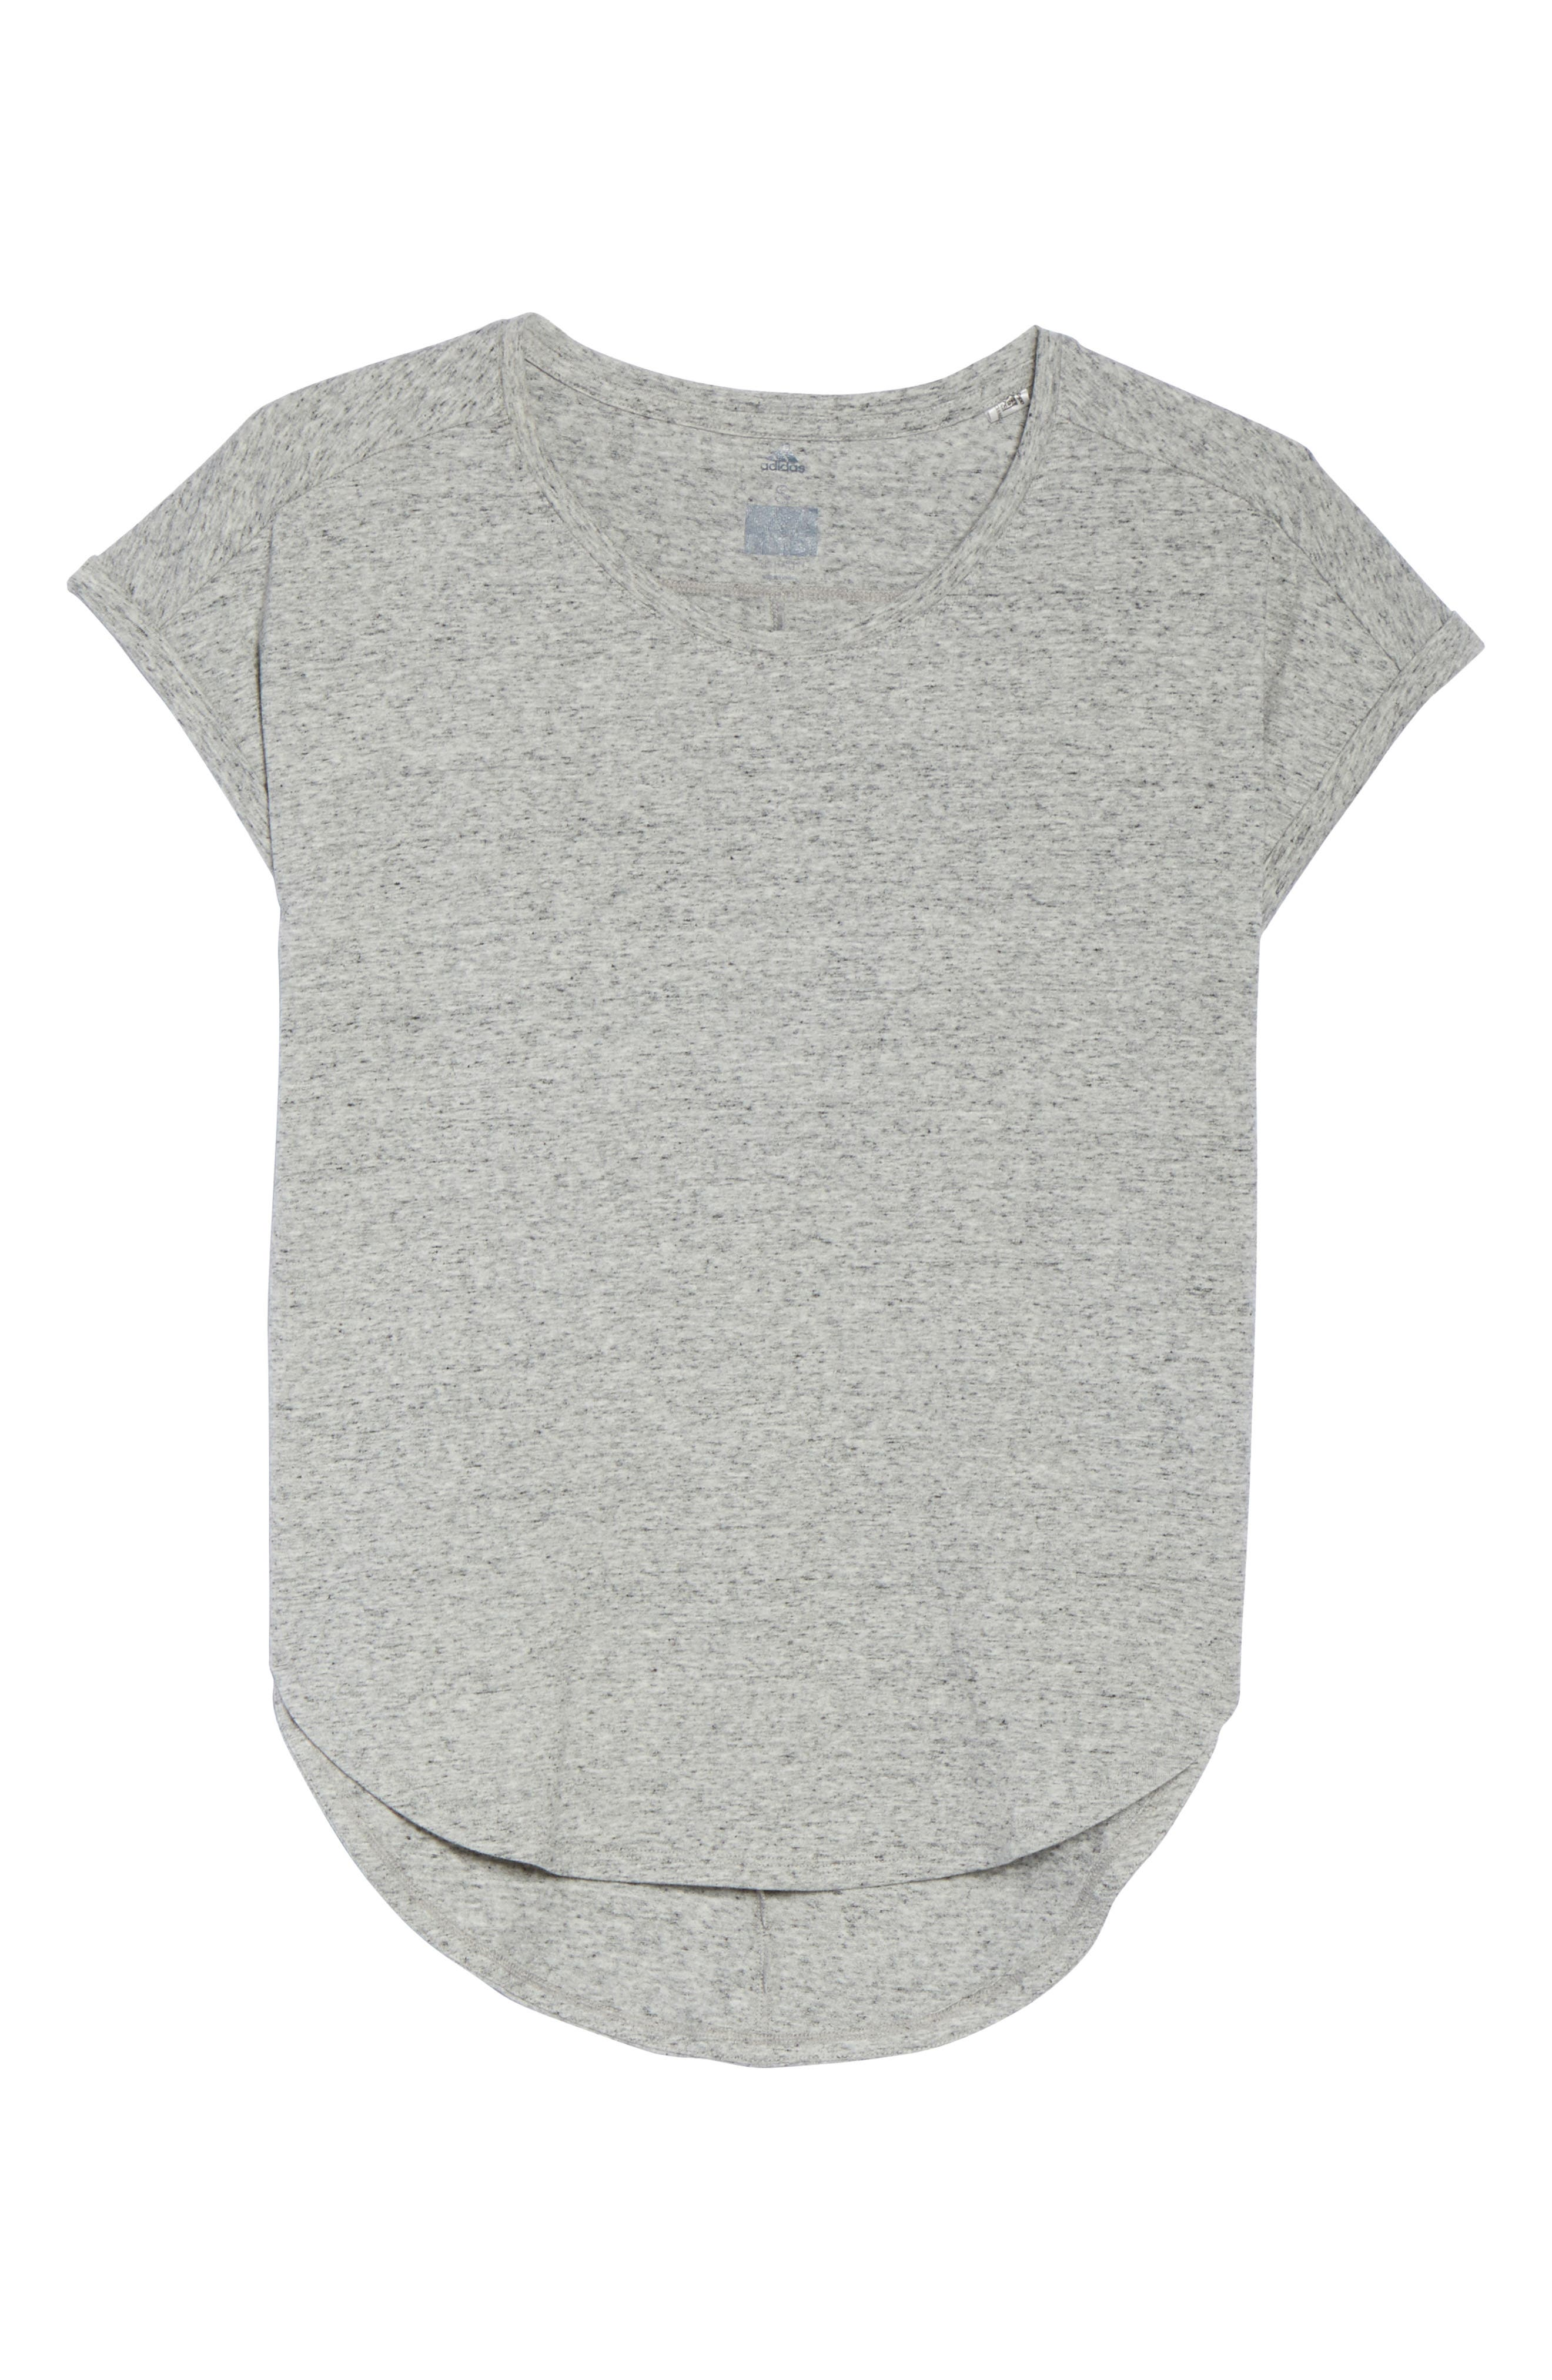 Performer High/Low Climalite<sup>®</sup> Tee,                             Alternate thumbnail 7, color,                             031